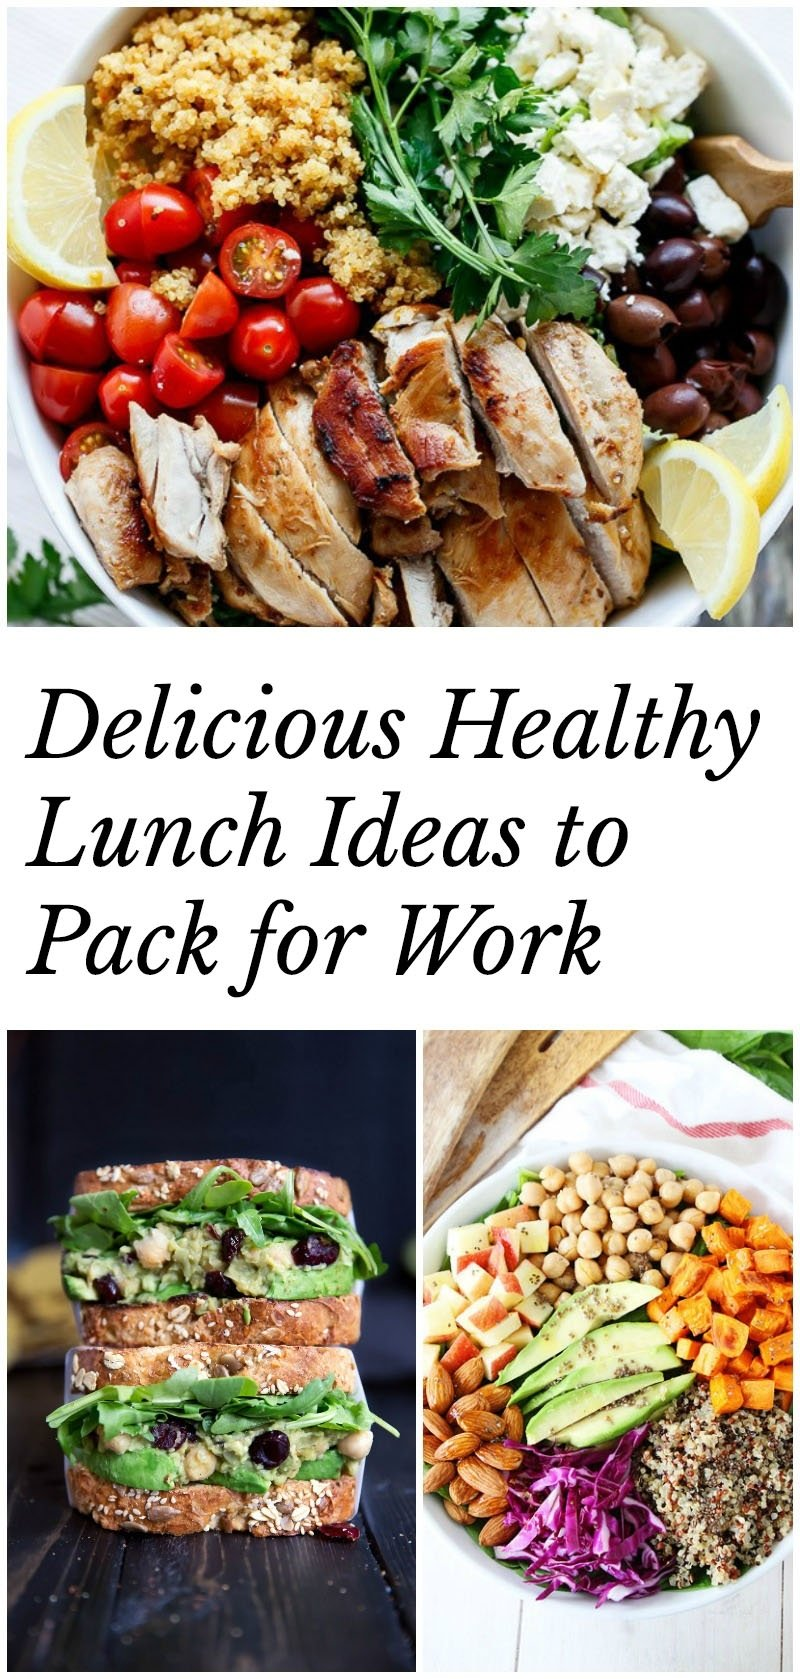 10 Ideal Healthy Packed Lunch Ideas For Work healthy lunch ideas to pack for work 40 recipes 28